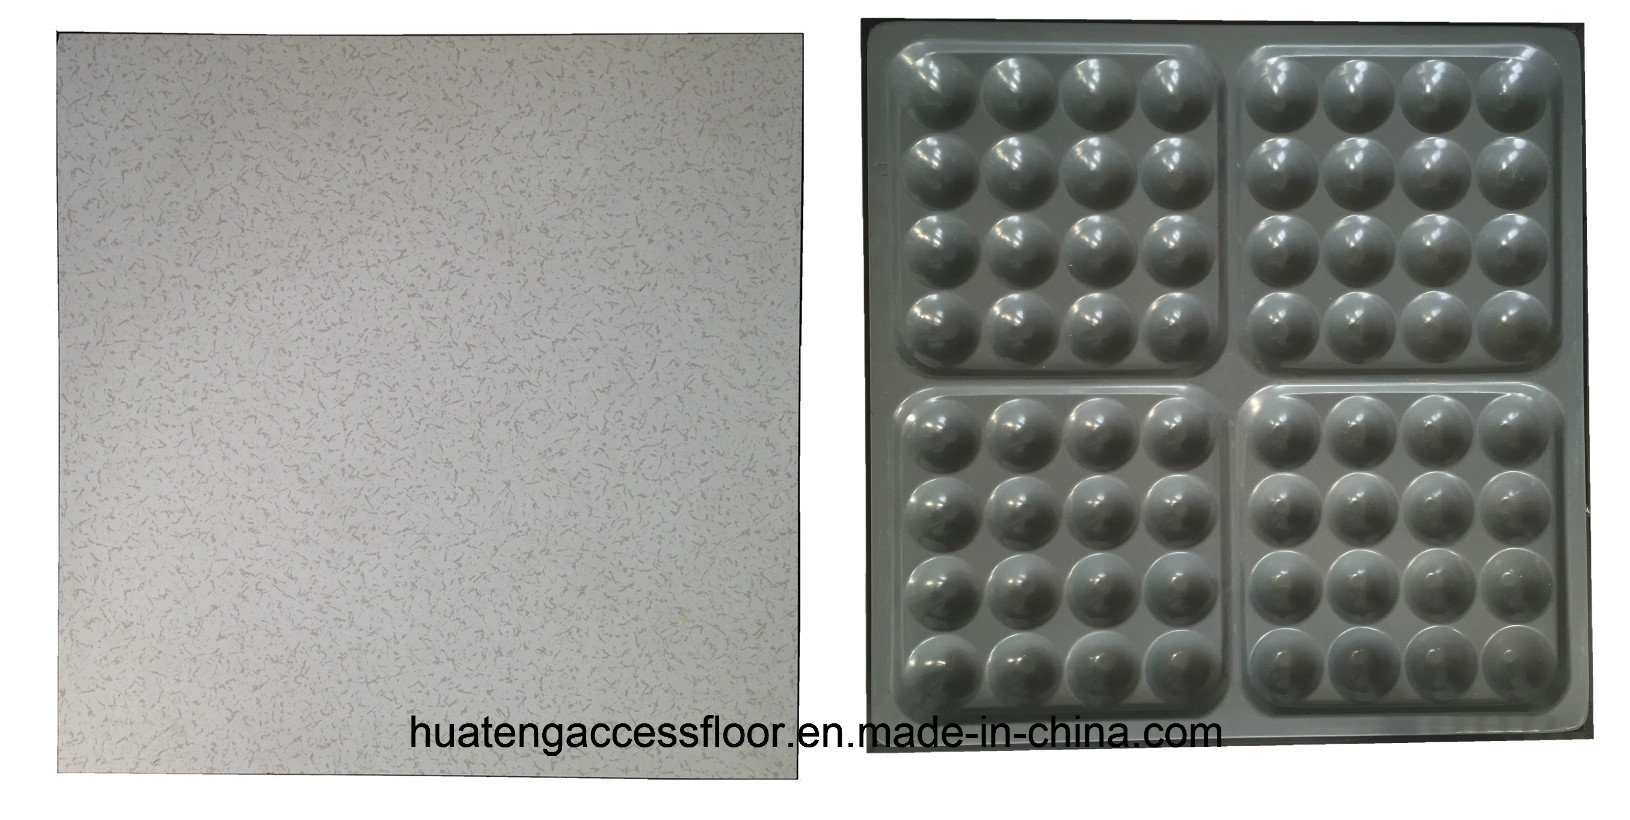 Antistatic Access Floor for Computer Room